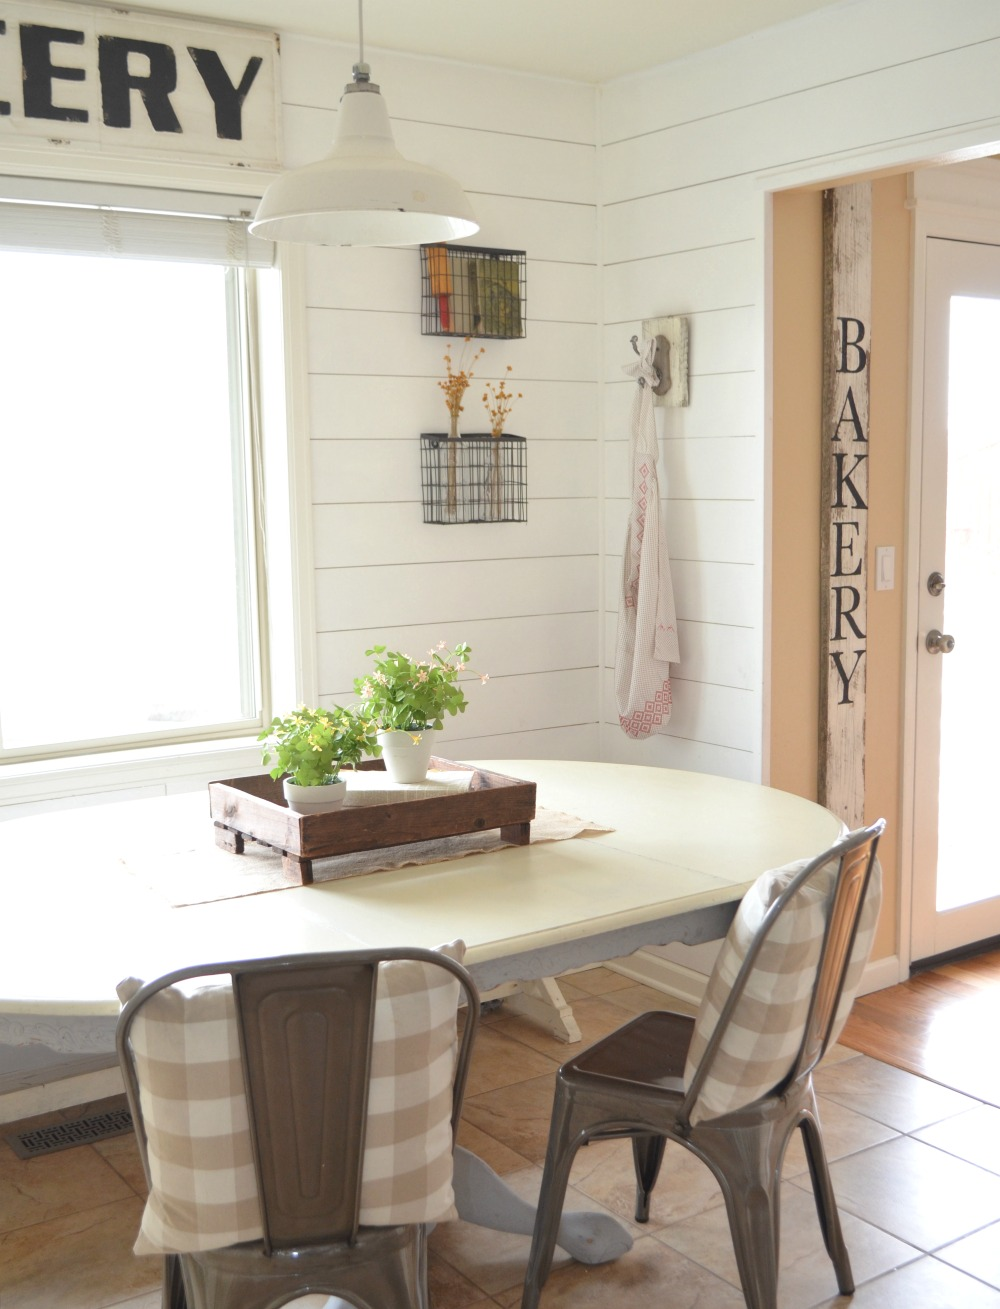 How I transitioned to farmhouse style and practical tips to help you find your own style.